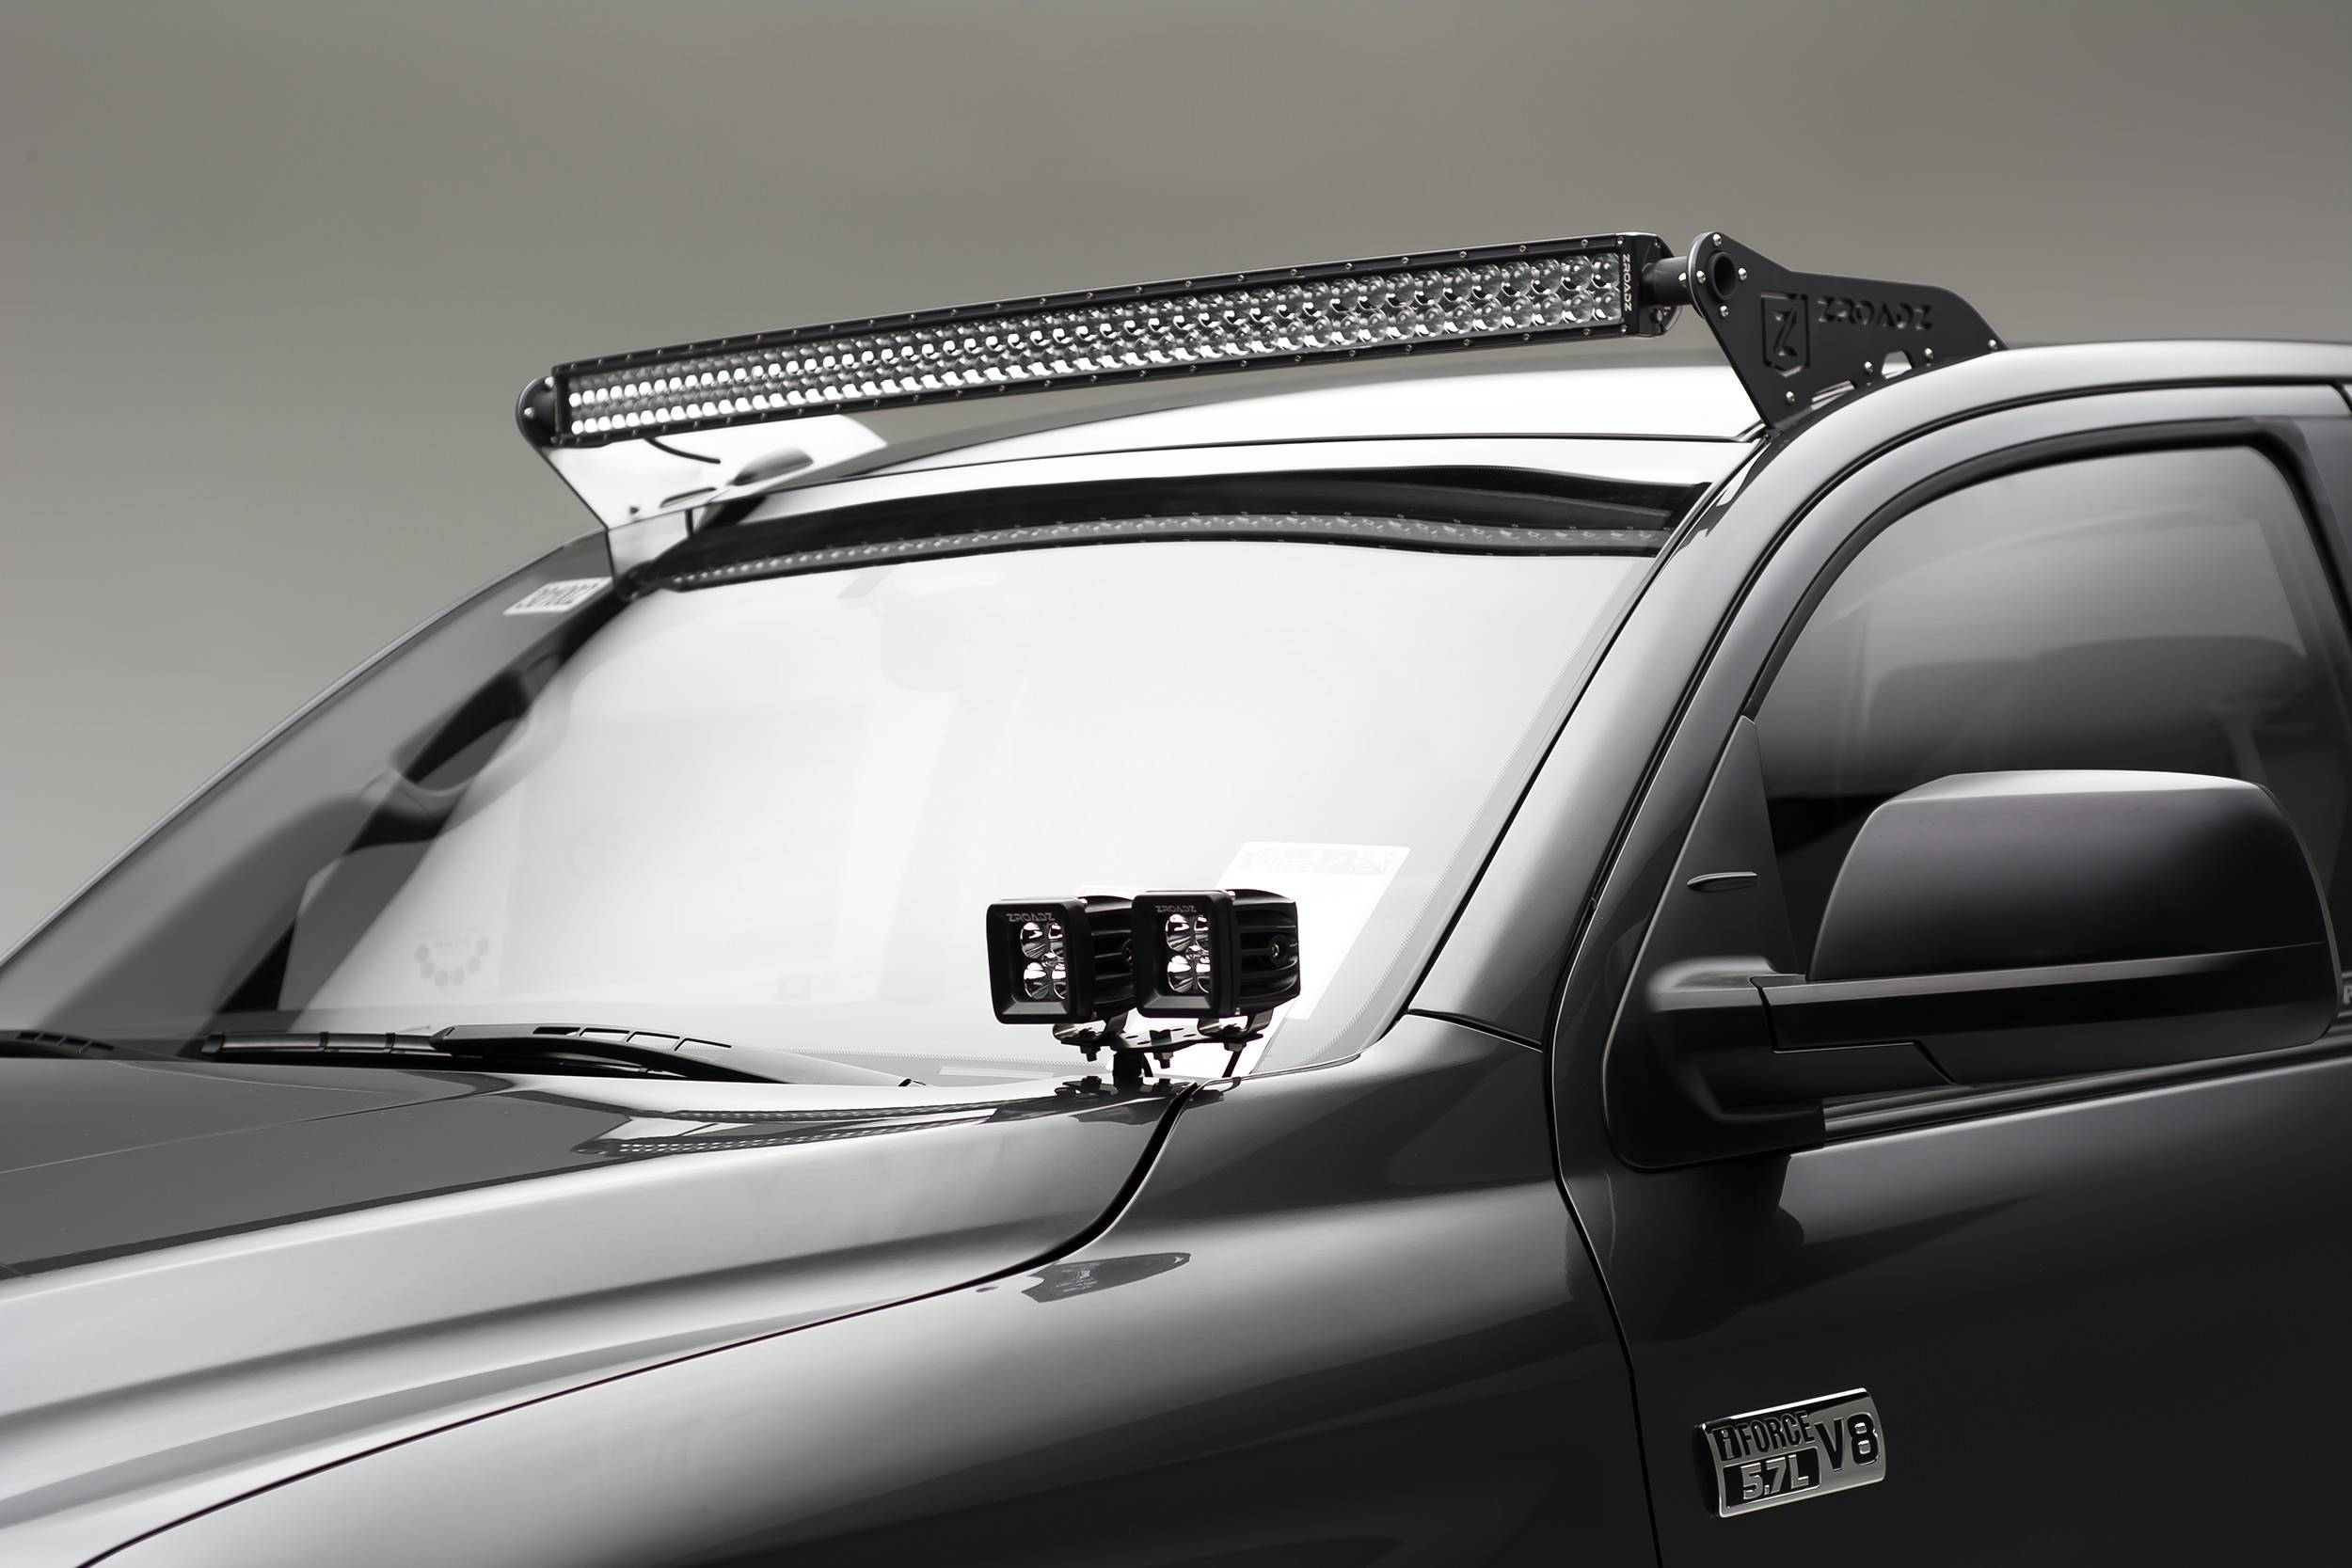 2007-2019 Toyota Tundra Front Roof LED Kit, Incl. (1) 50 Inch LED Curved Double Row Light Bar - PN #Z339641-KIT-C